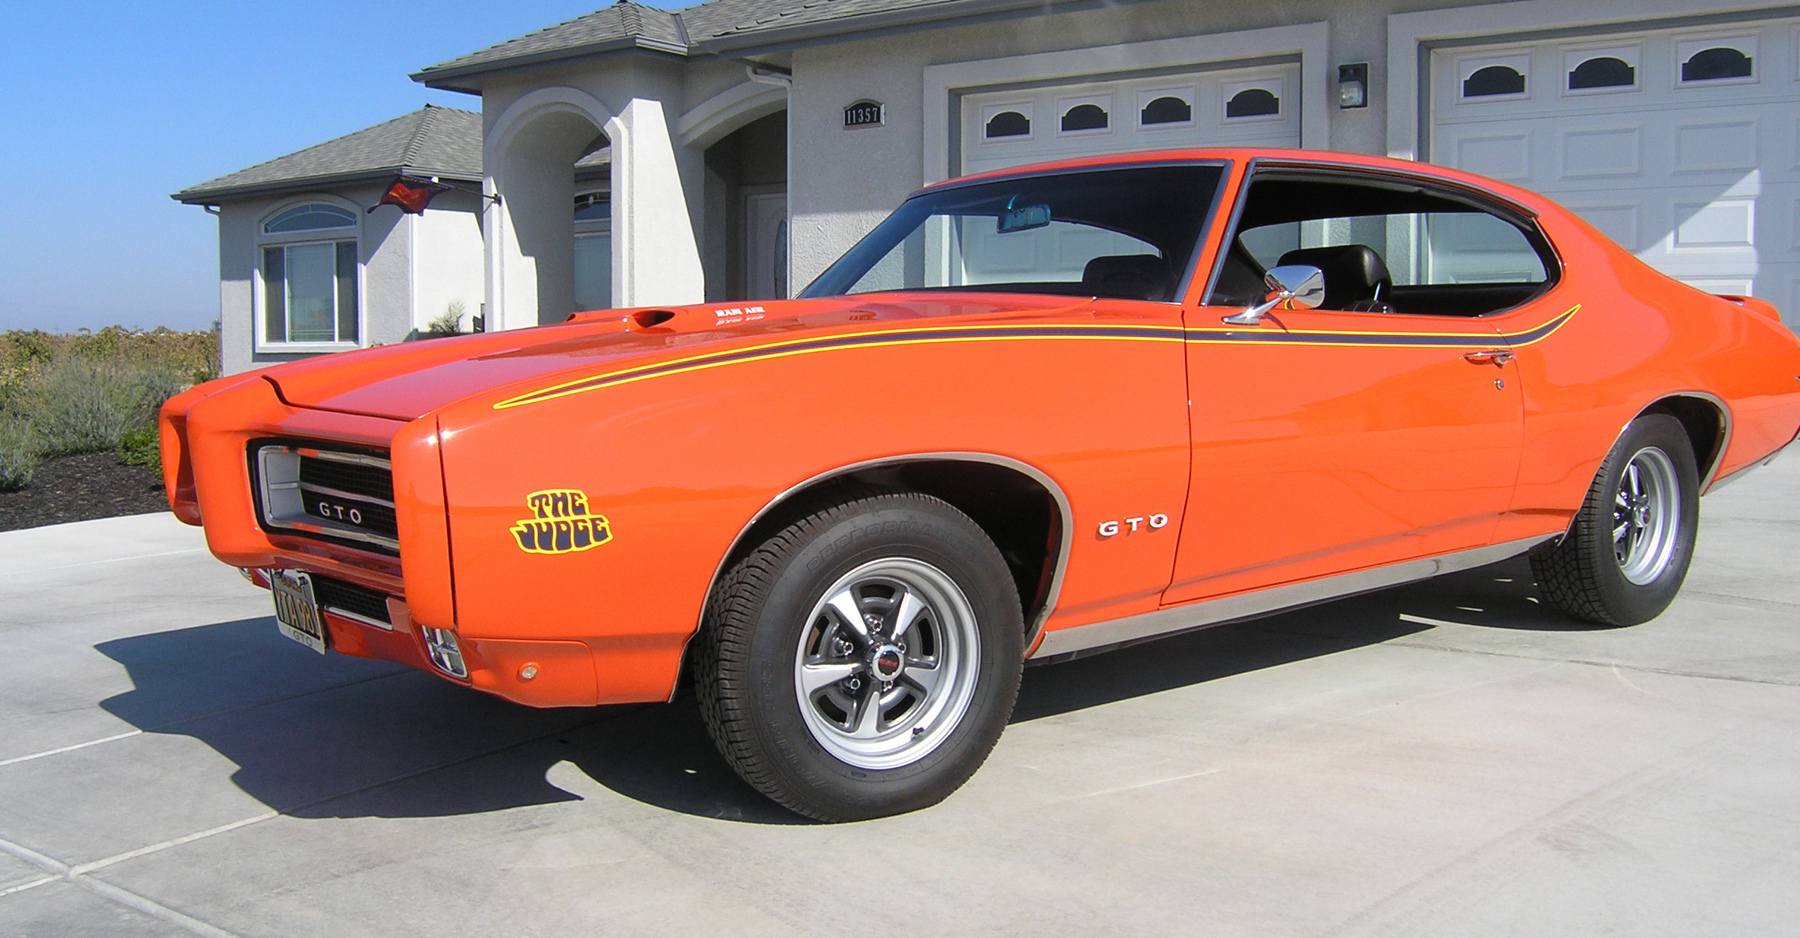 hight resolution of fisher learned this pontiac was built during the third week of march in 1969 at the general motors plant in fremont calif the 16 foot 9 25 inch long gto